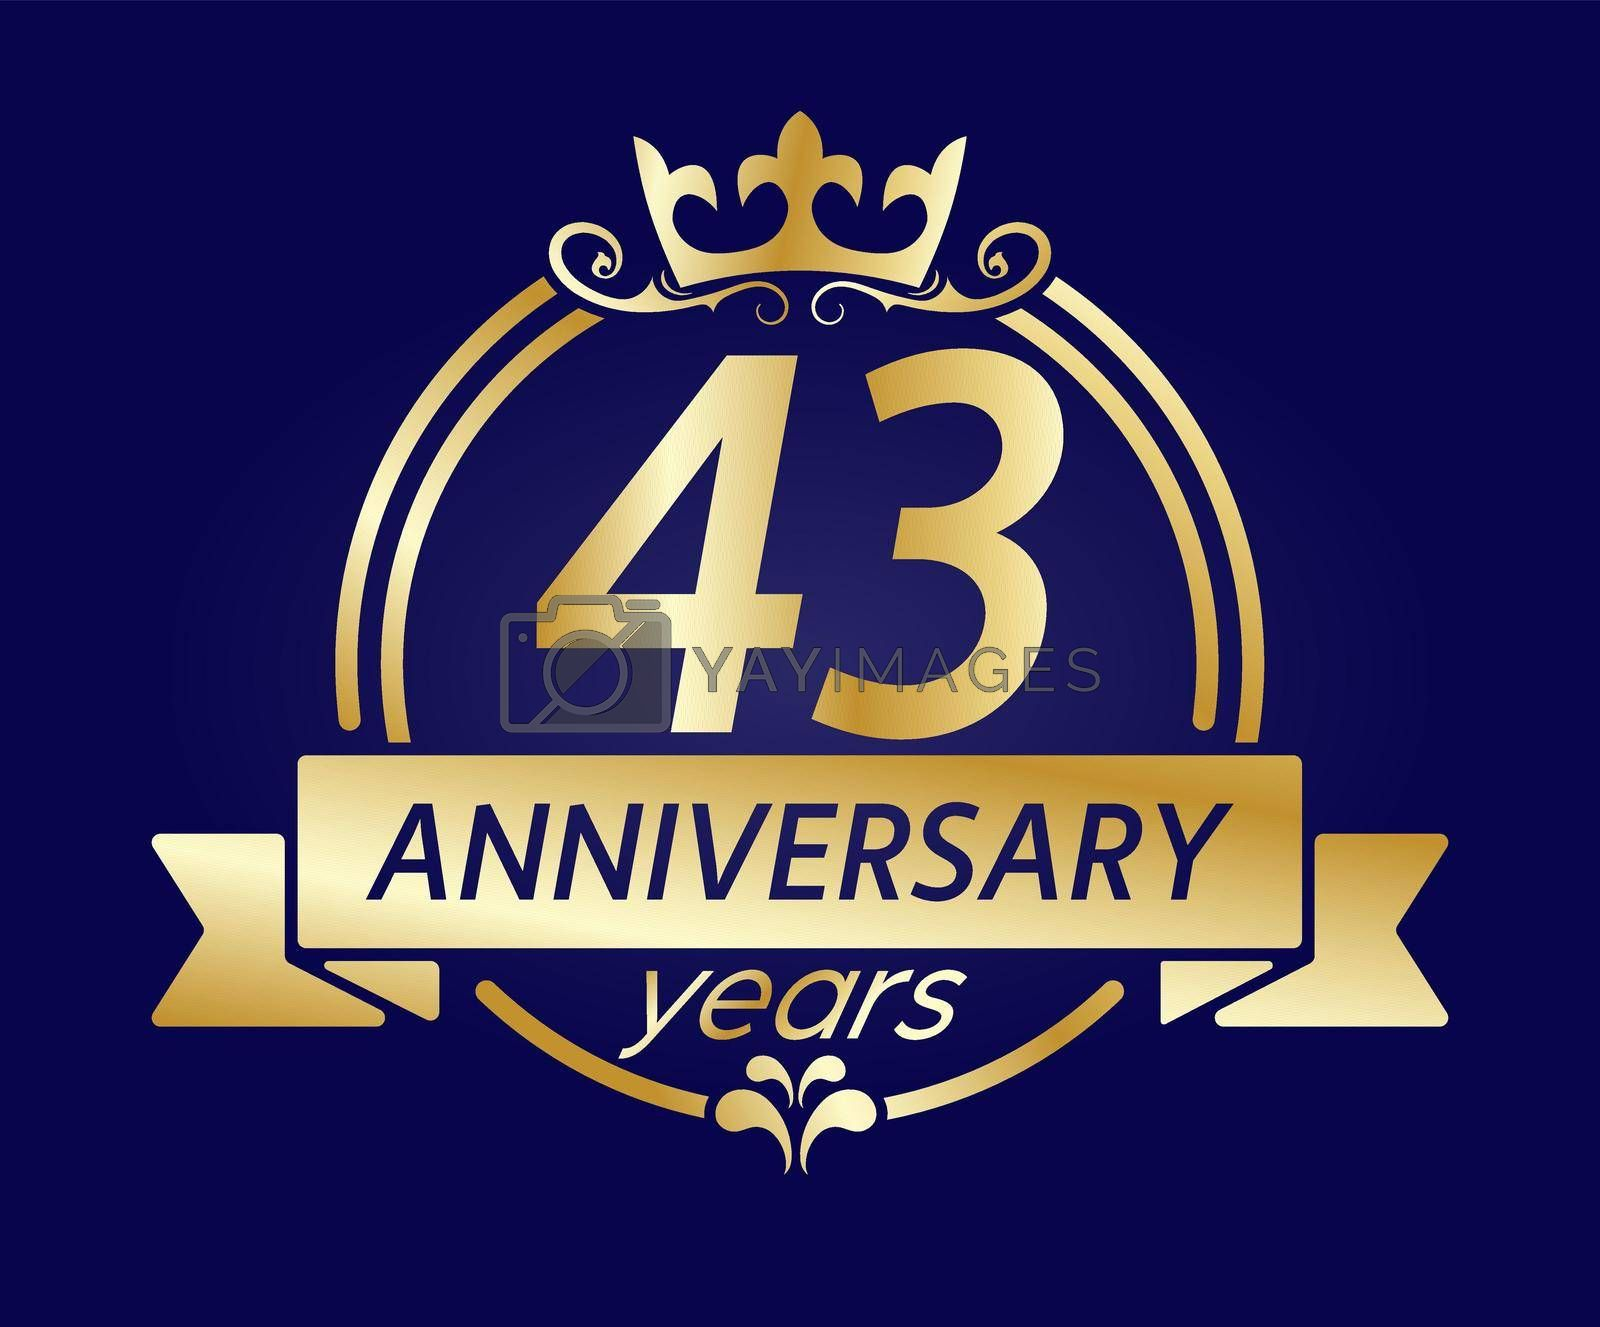 43 year anniversary. Gold round frame with crown and ribbon. Vector illustration for birthday, wedding or anniversary greetings, for creative design. Simple style.